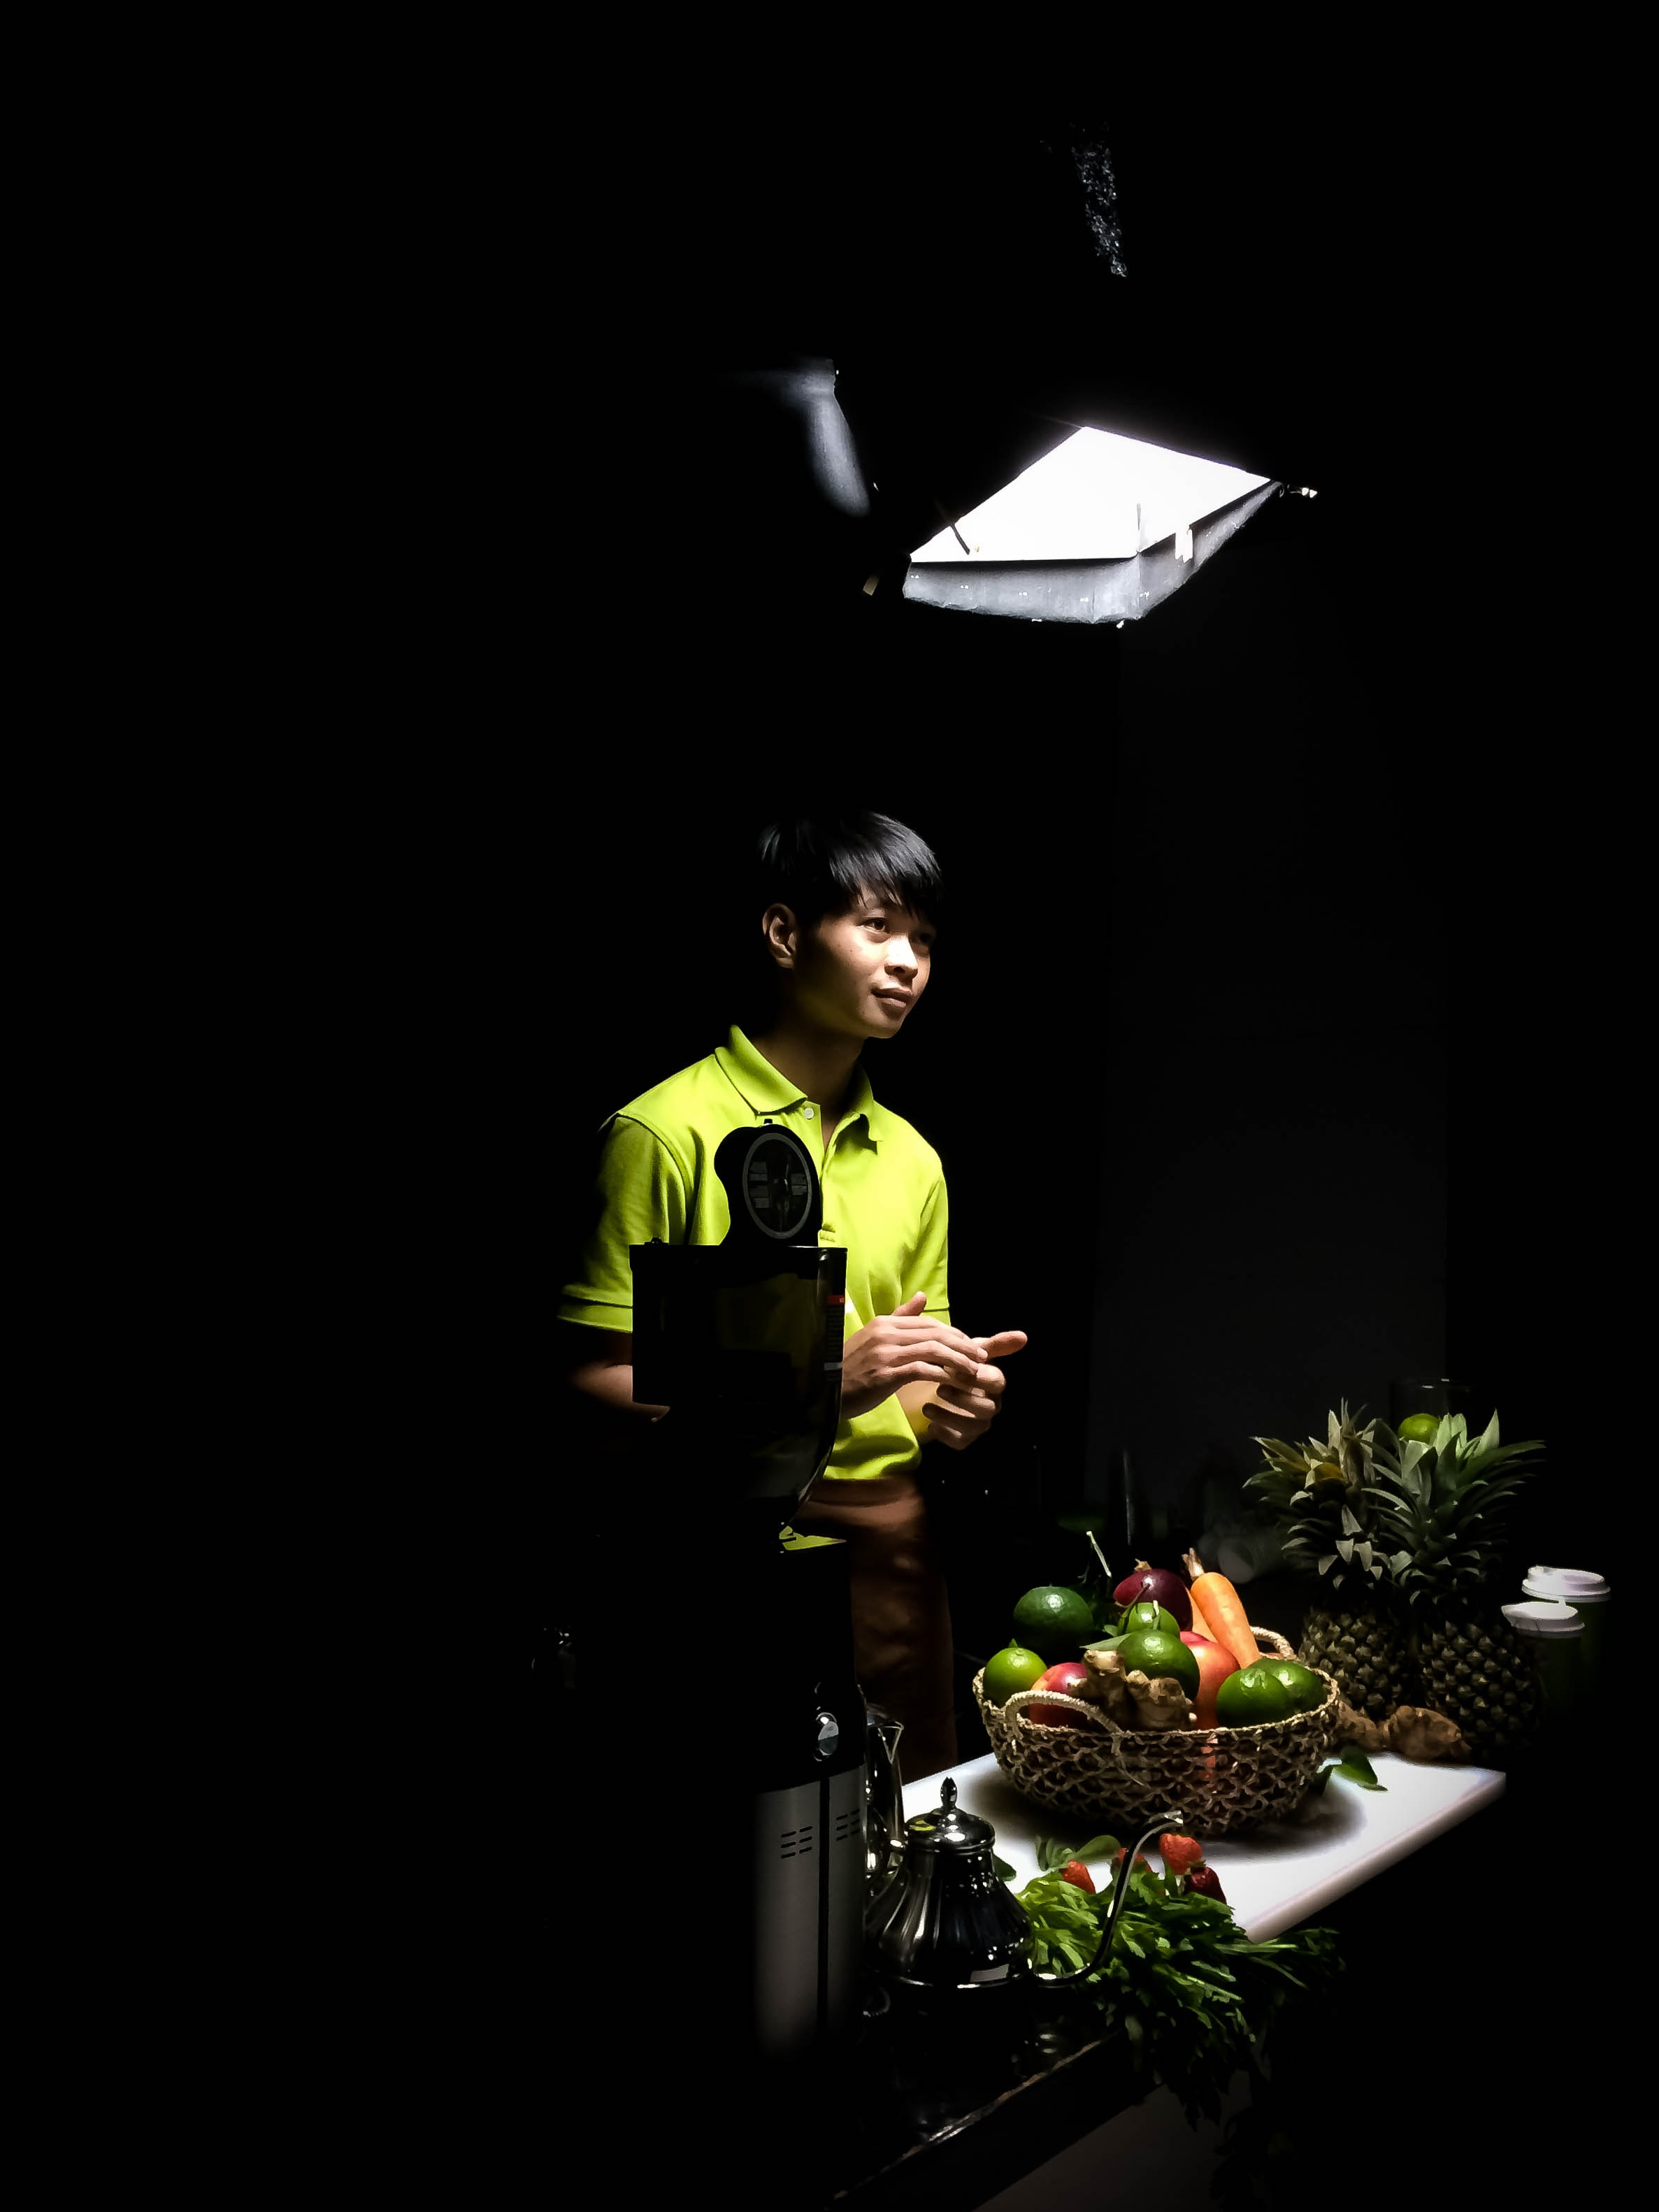 Man in Green Polo Shirt Standing, Adult, Light, Work, Technology, HQ Photo